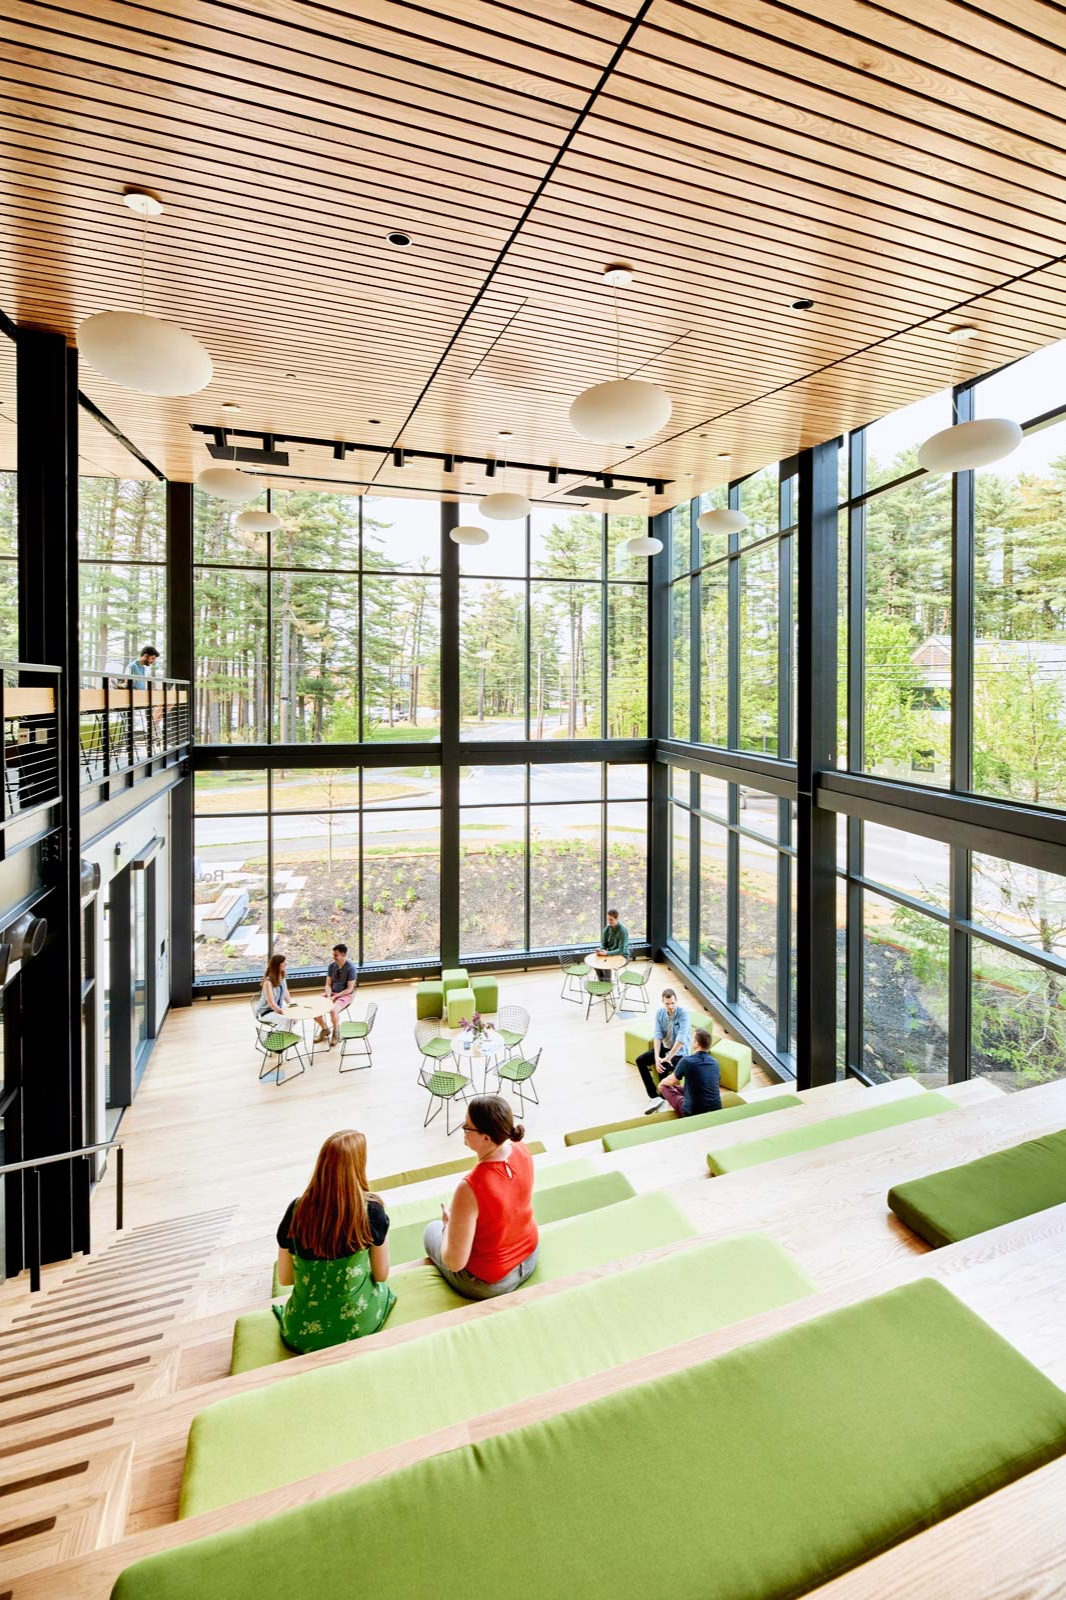 The Lantern was designed as a multipurpose space. Risers fitted with leaf-green cushions accommodate students for lectures and performances or a comfortable place to study.